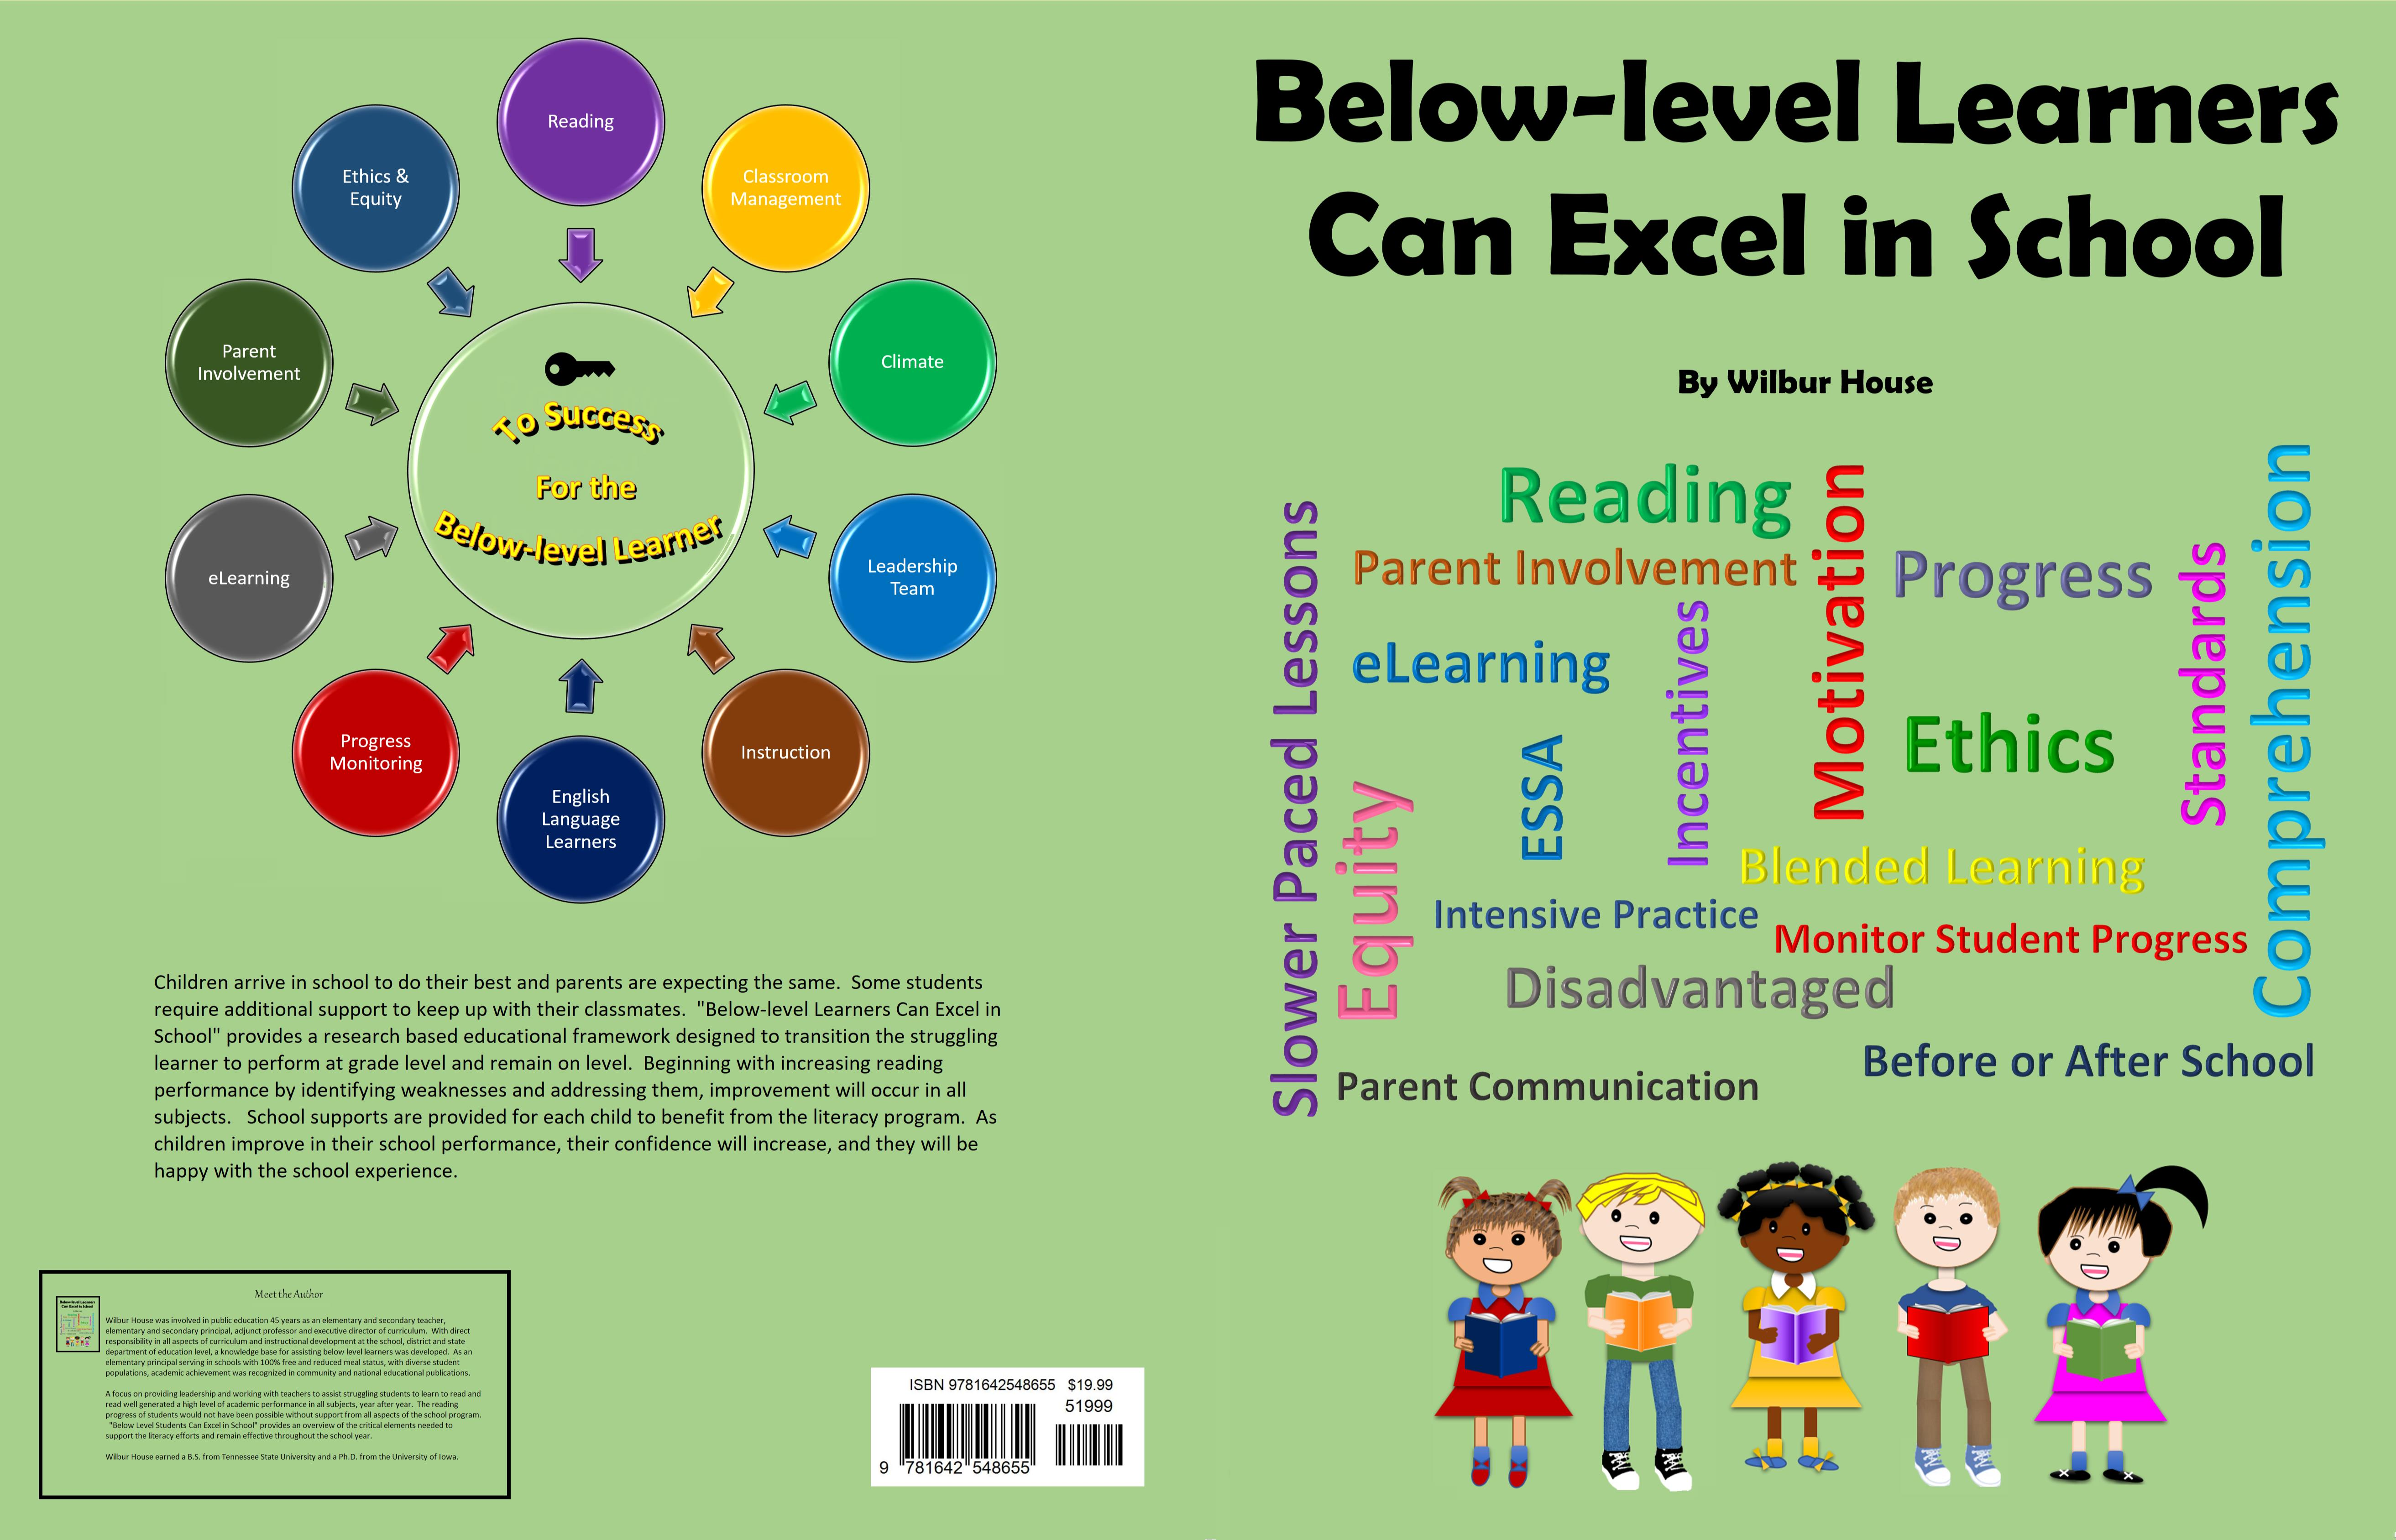 Below-Level Learners Can Excel in School cover image